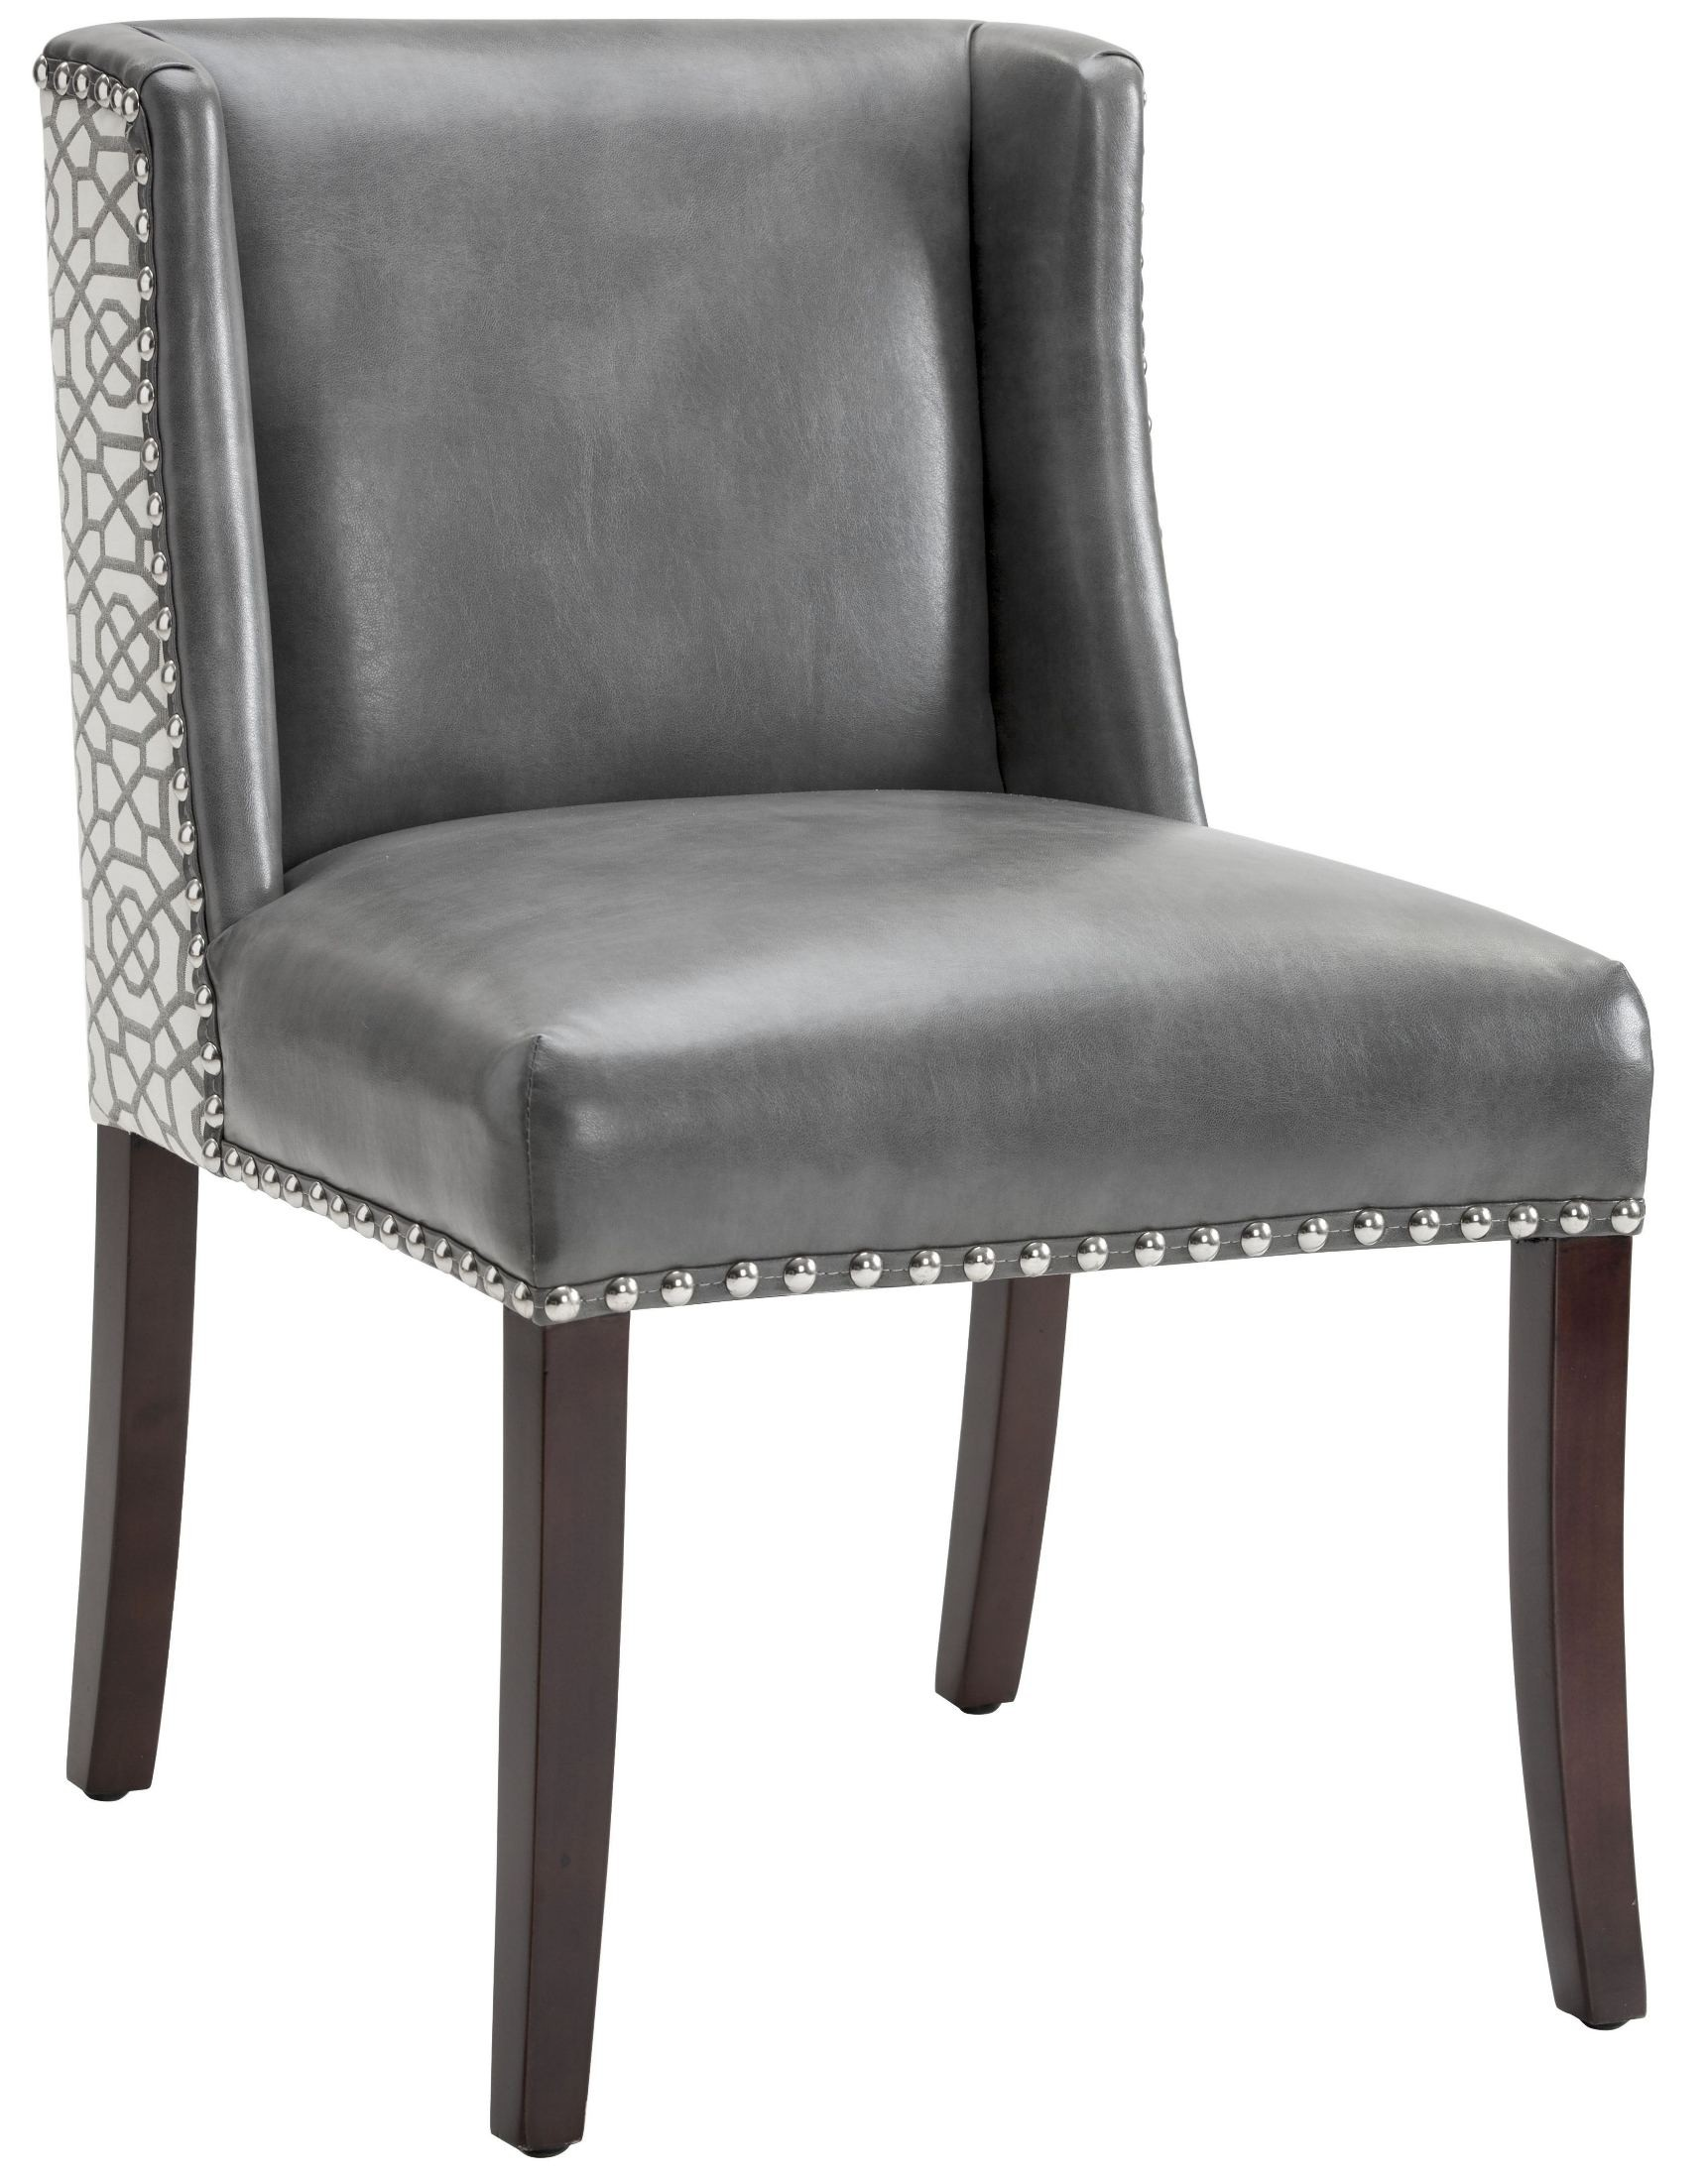 Marlin Grey Leather And Diamond Fabric Dining Chair Set Of